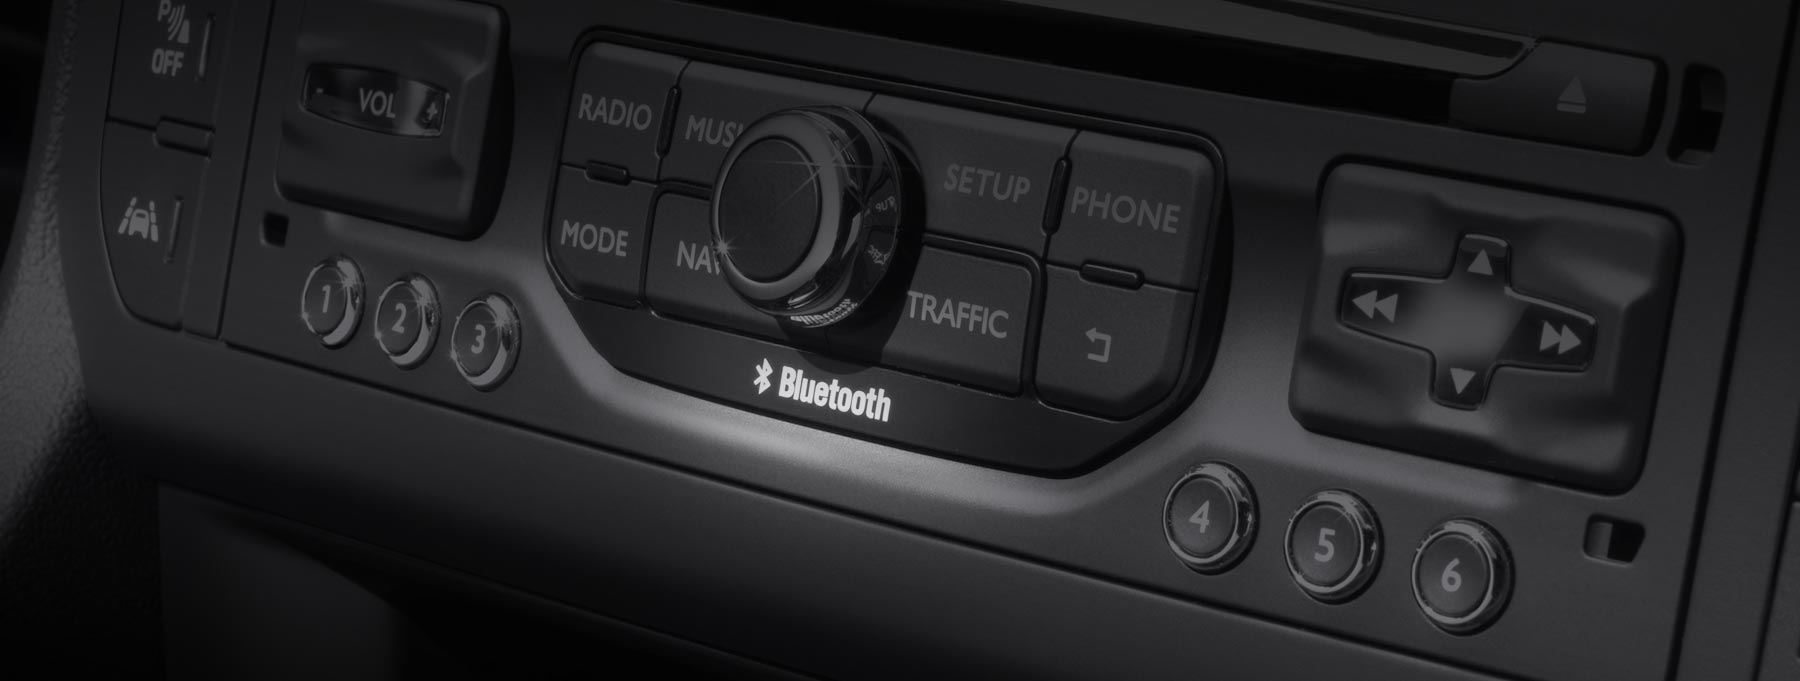 Bluetooth-compatibiliteit